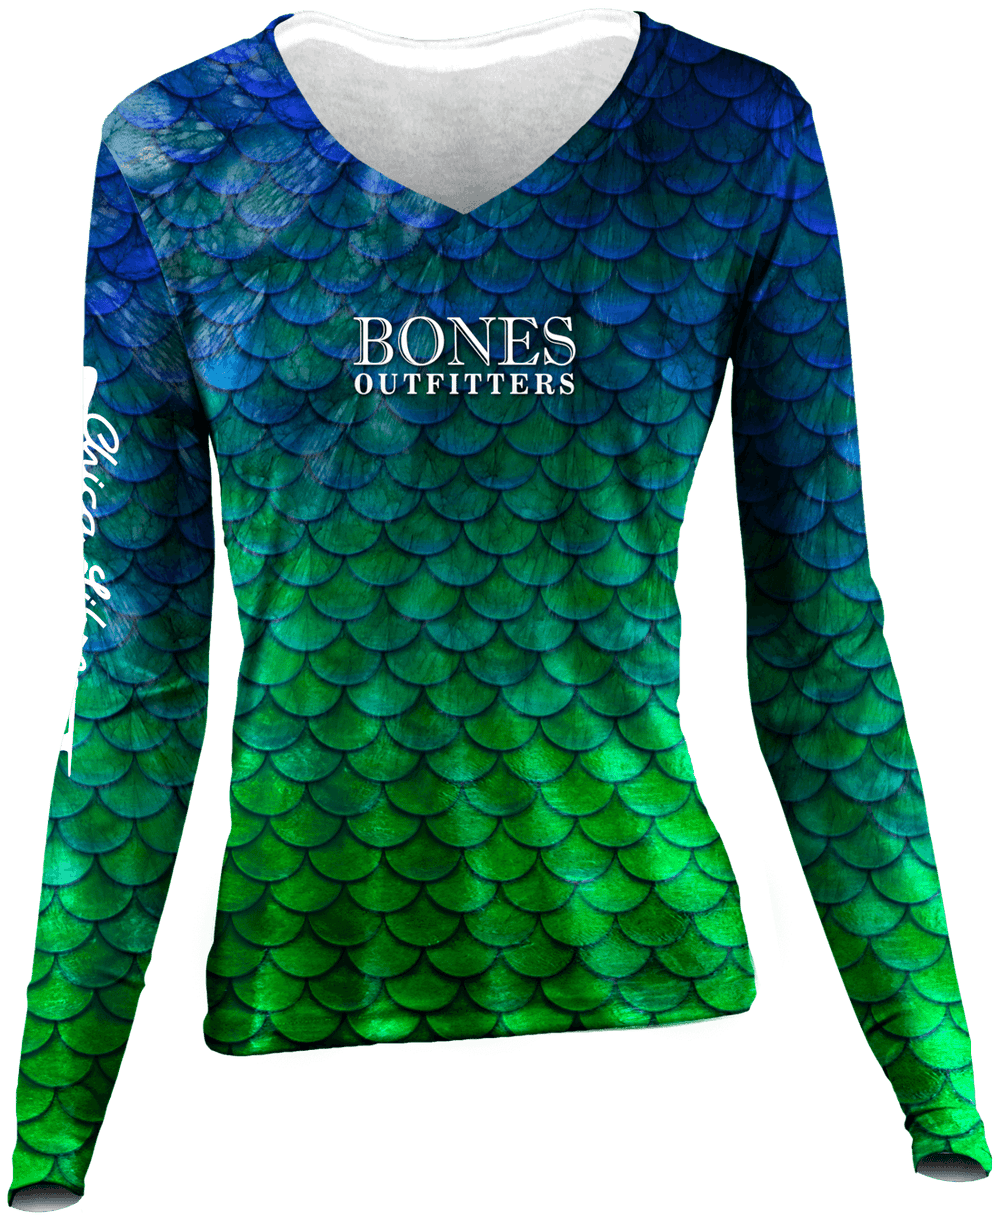 Chica Libre Crossing Women's Special Edition - Bones Outfitters